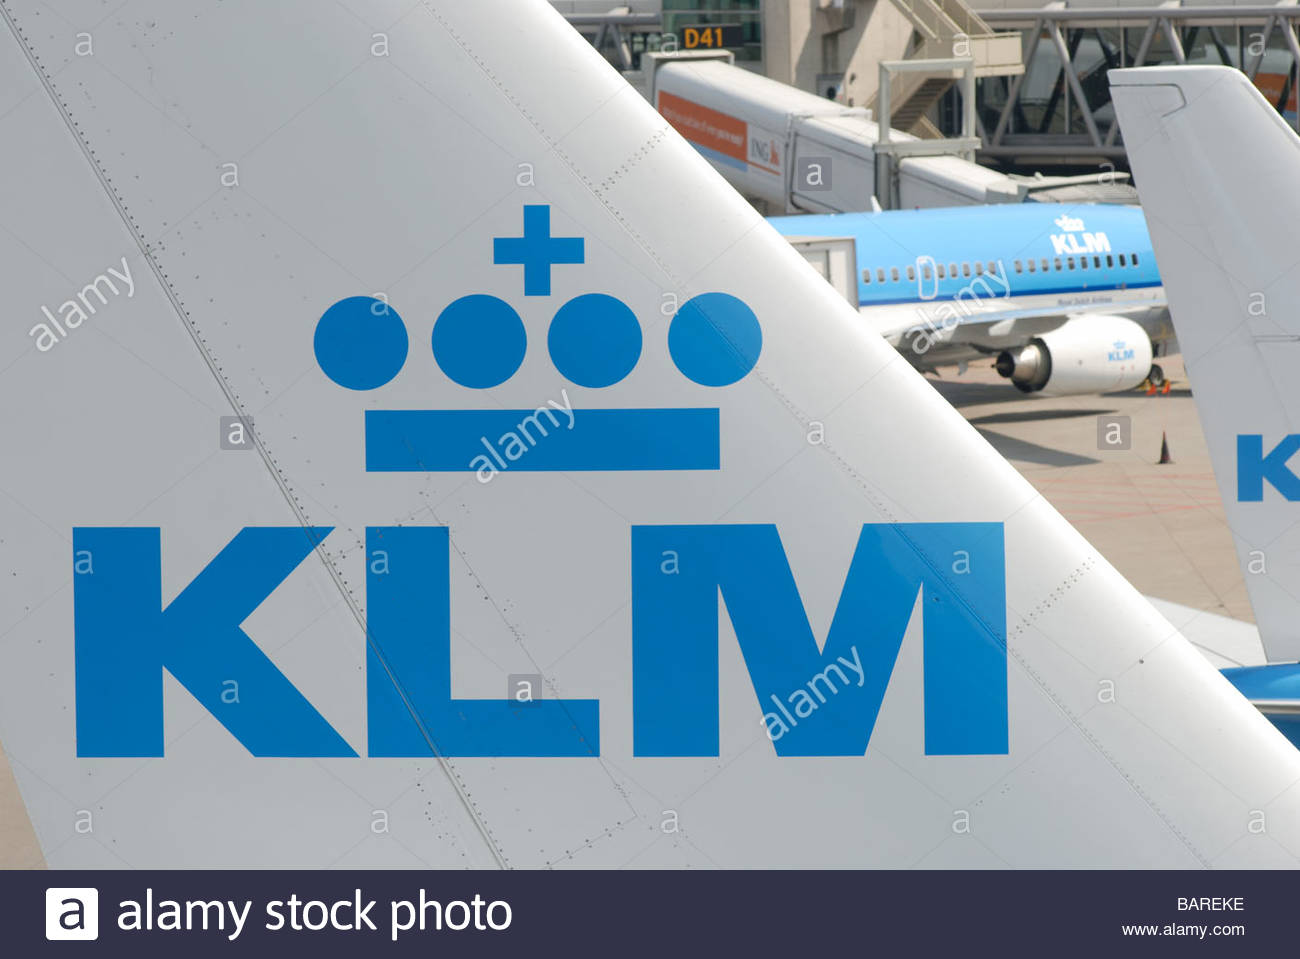 Schiphol Airport The Netherlands KLM Airbus A330 on the apron. - Stock Image